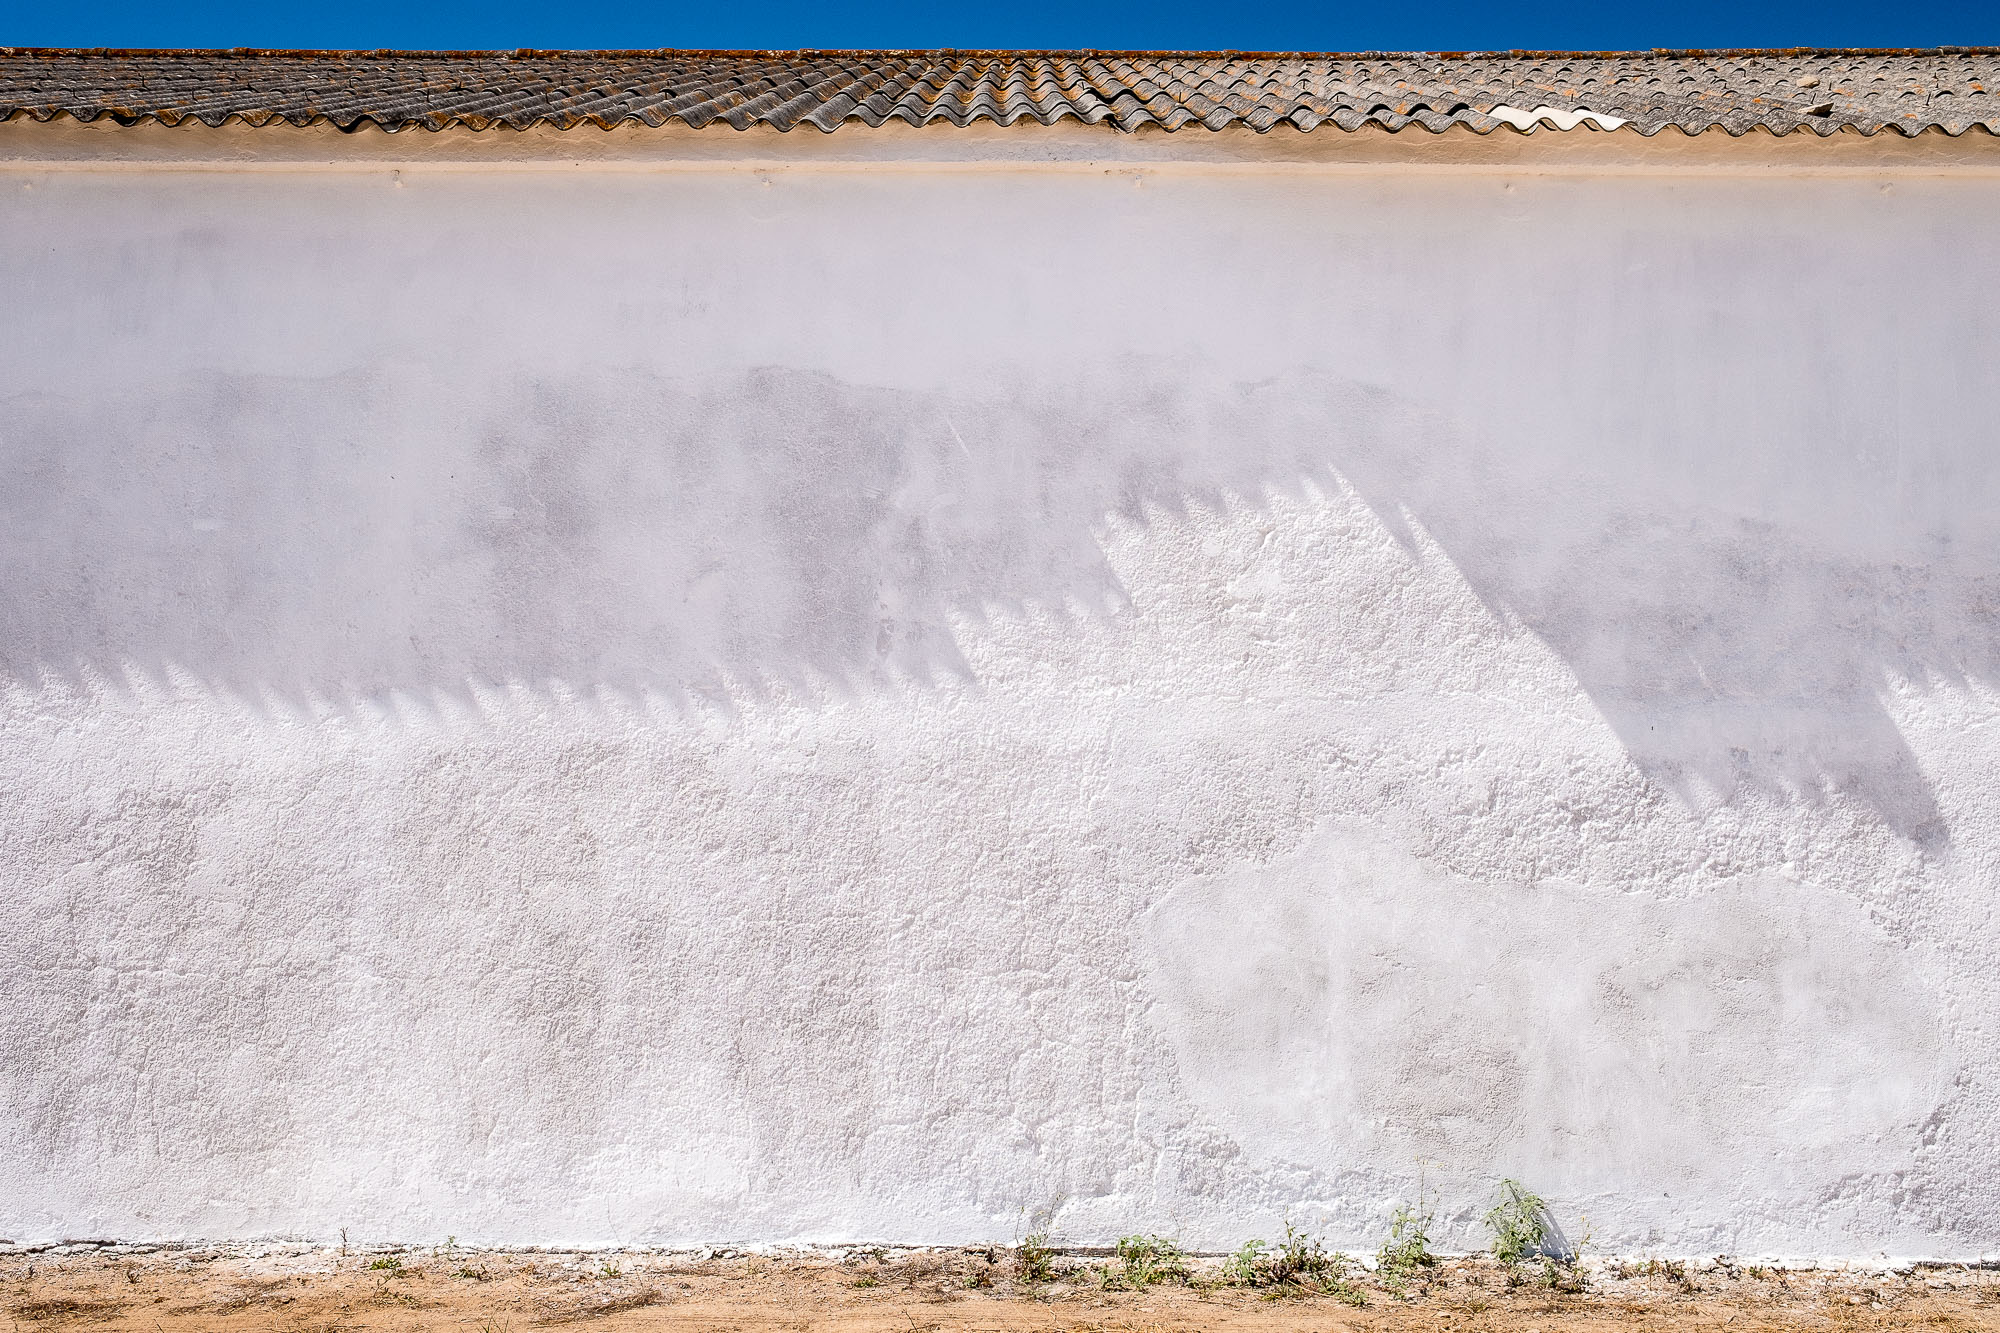 color photography inspiration, color in photography, examples of color in photography, photography of color, photography colours | Photo: White wall in Tavira, Portugal | Copyright Karin van Mierlo, Photography Playground